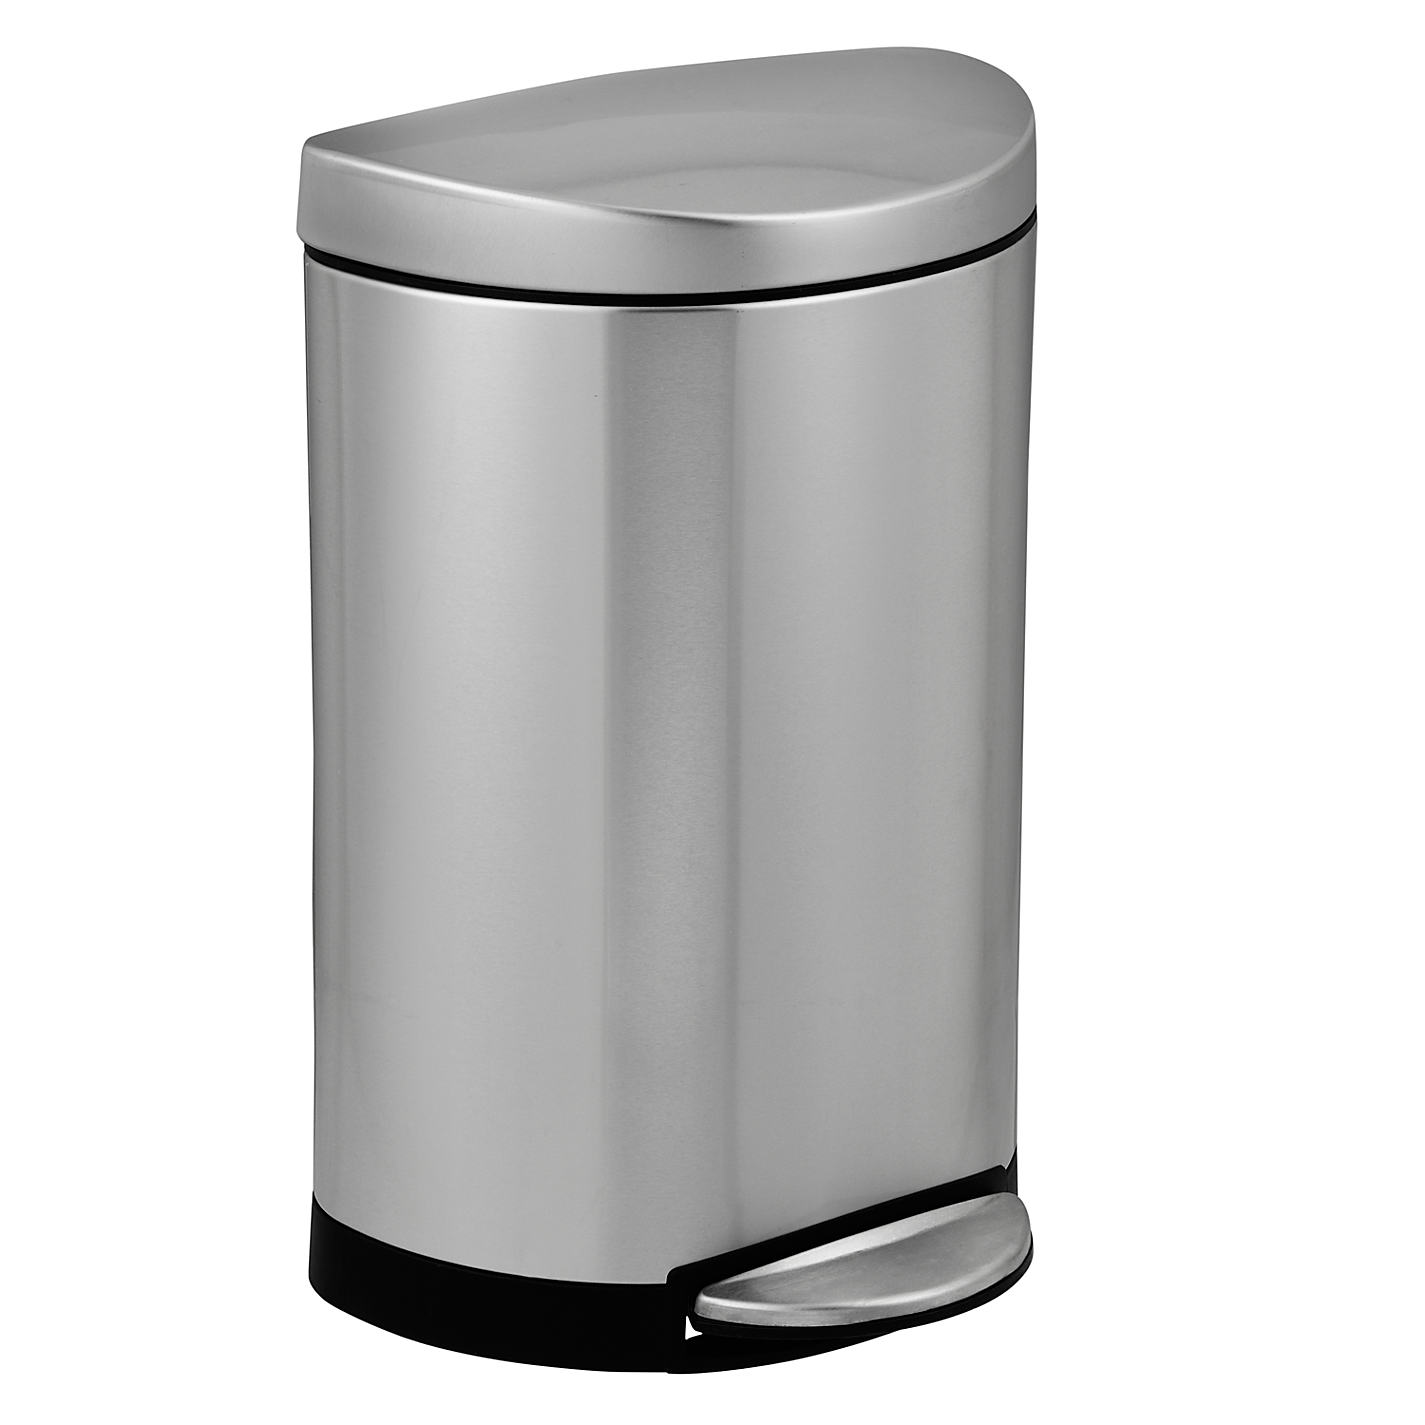 Simplehuman Trash Can Lid | Simplehuman Recycler | Simple Human Recycler